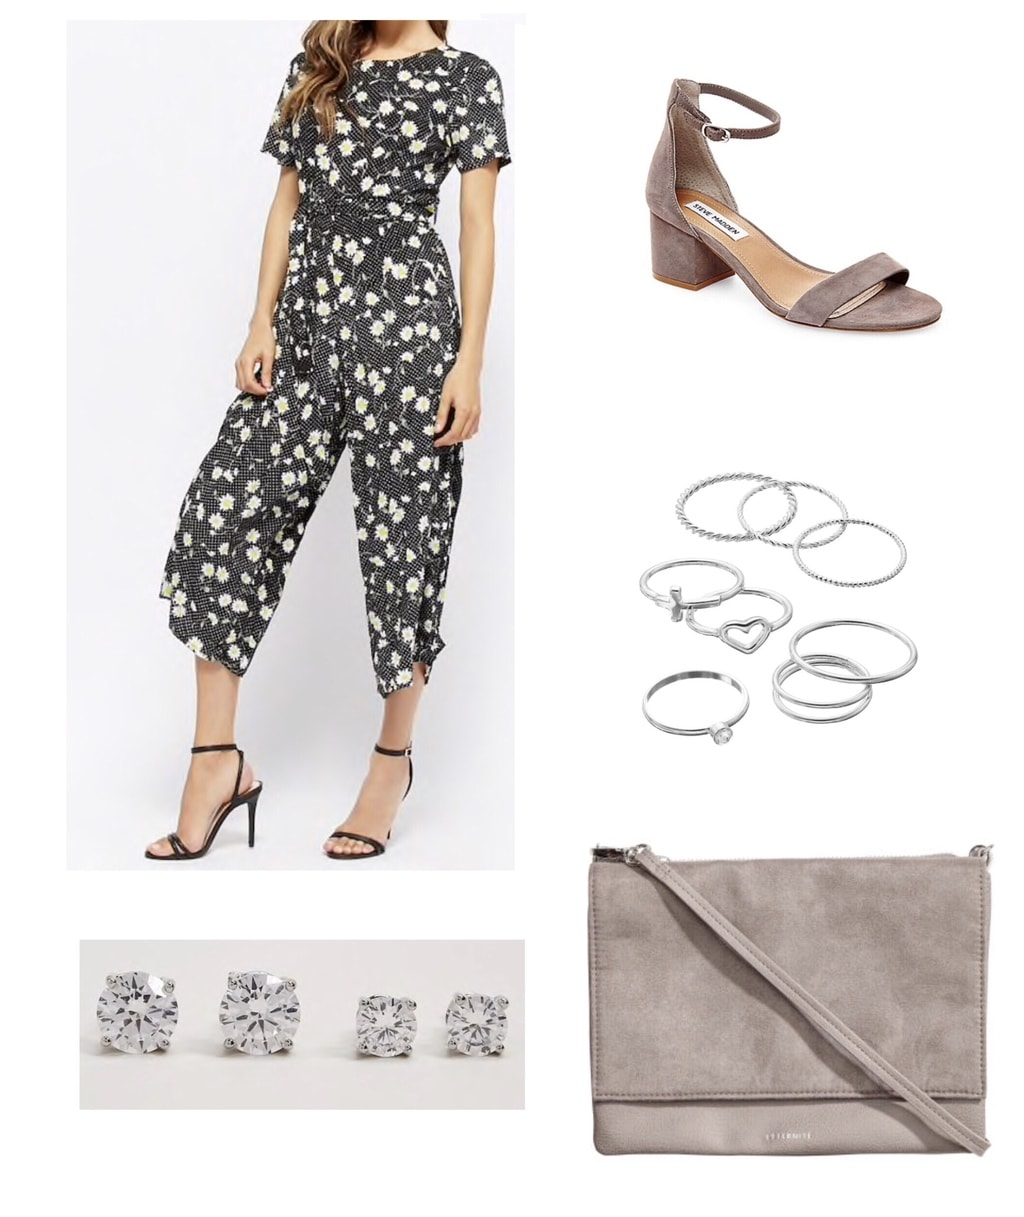 Motel Floral Print Jumpsuit with faux suede sandals and purse, silver jewelry